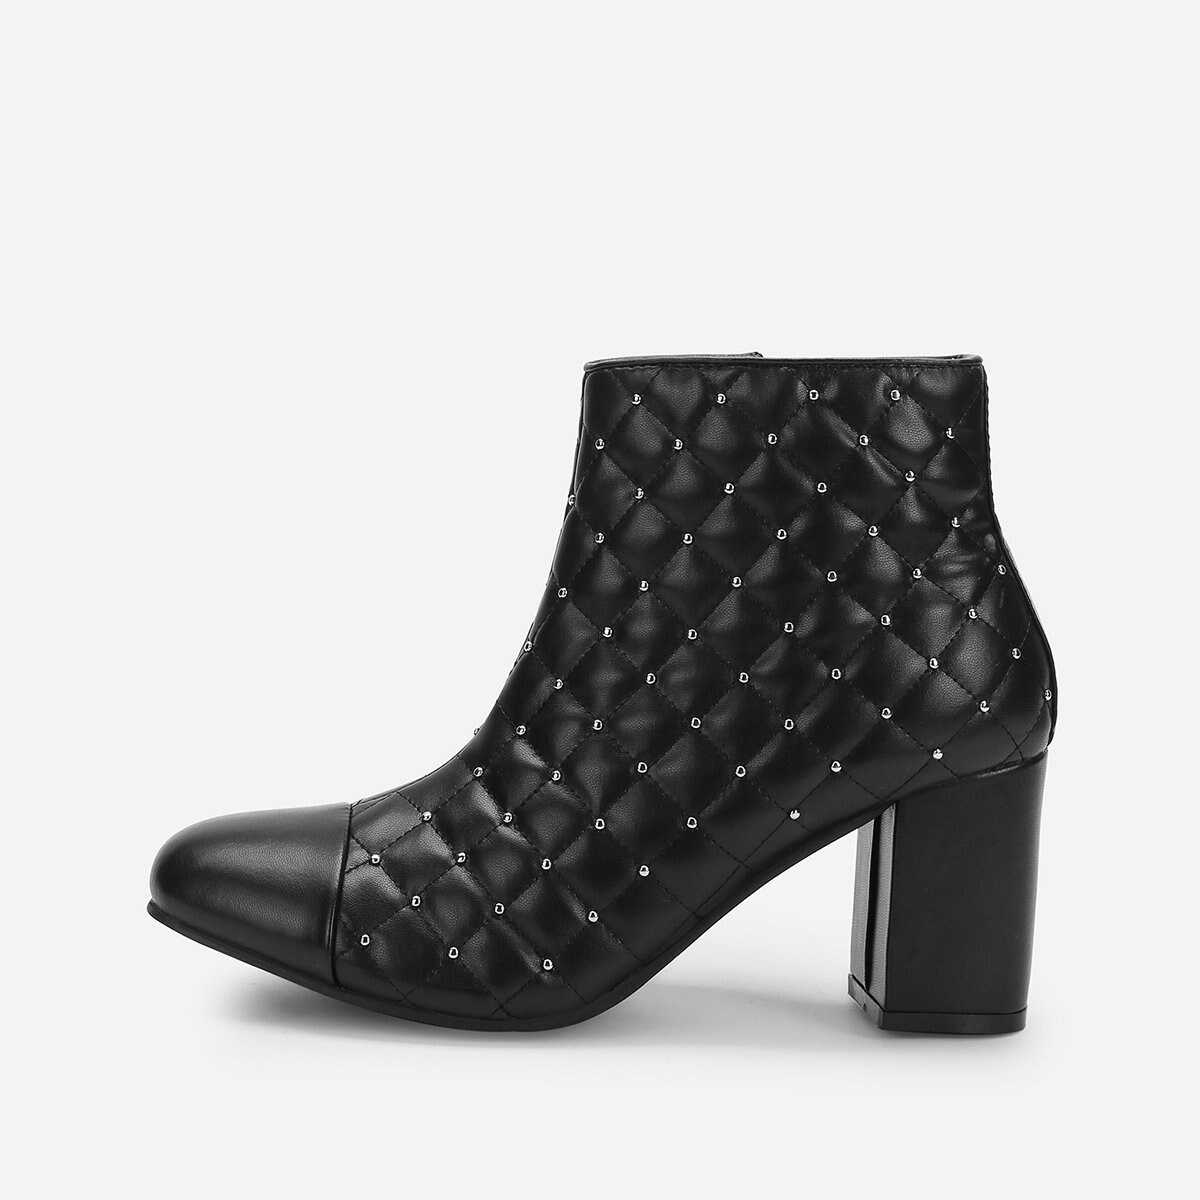 Rivet Detail Heeled Ankle Boots - Shein - GOOFASH